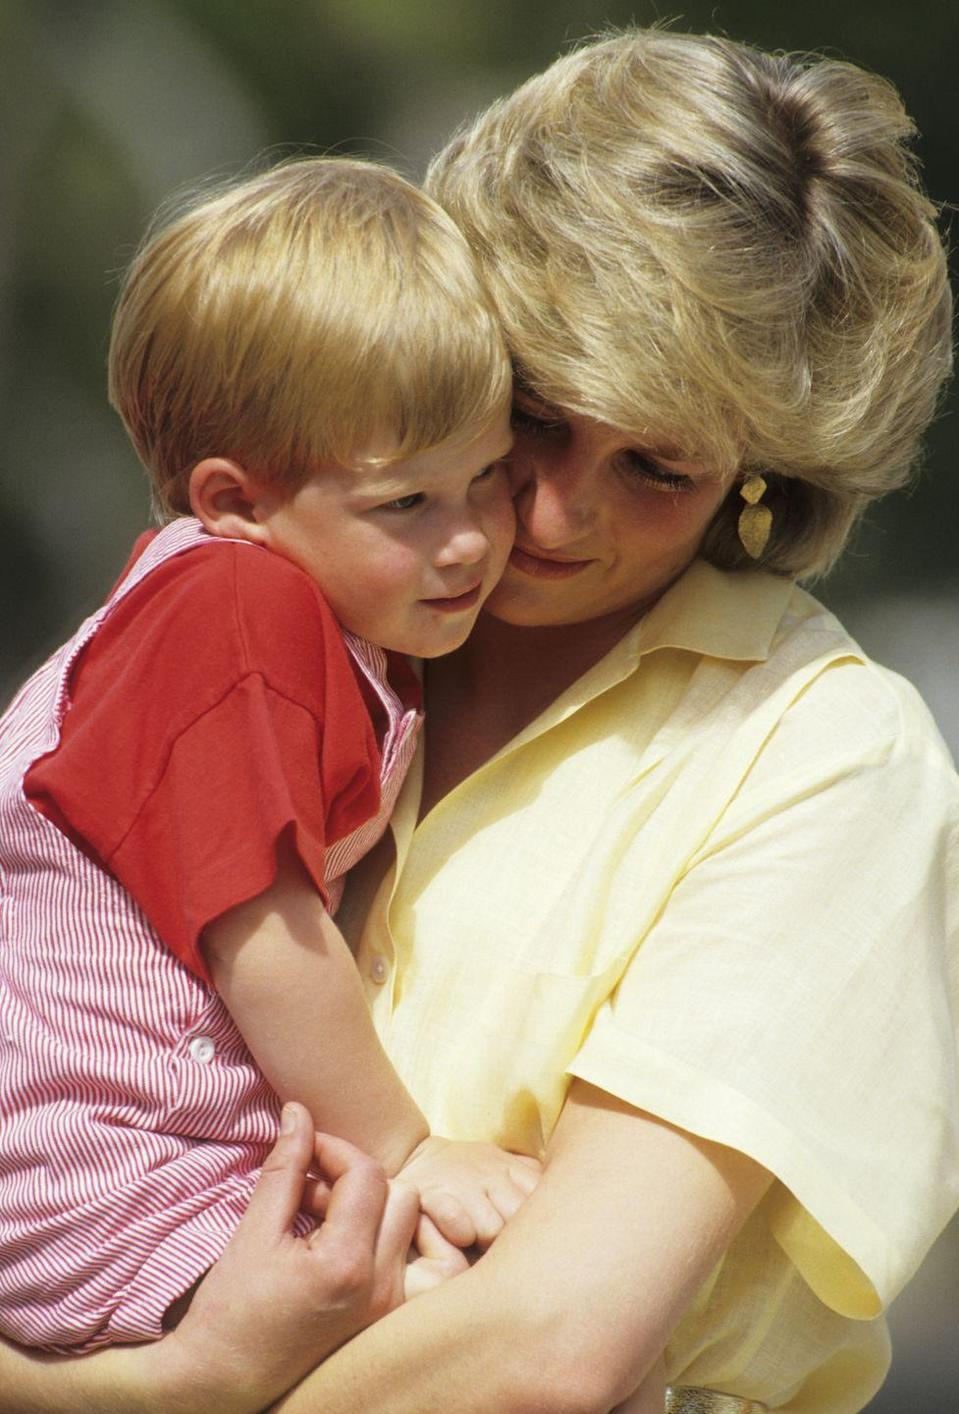 """<p>Princess Diana holds her nearly 3-year-old son, Prince Harry, while on holiday in Majorca, Spain in August 1987. In the same HBO documentary released in 2017, Harry said he can still feel Diana's hugs. """"I miss that, I miss that feeling. I miss that part of a family, I miss having that mother...to be able to give you those hugs and give you that compassion that I think everybody needs.""""</p>"""